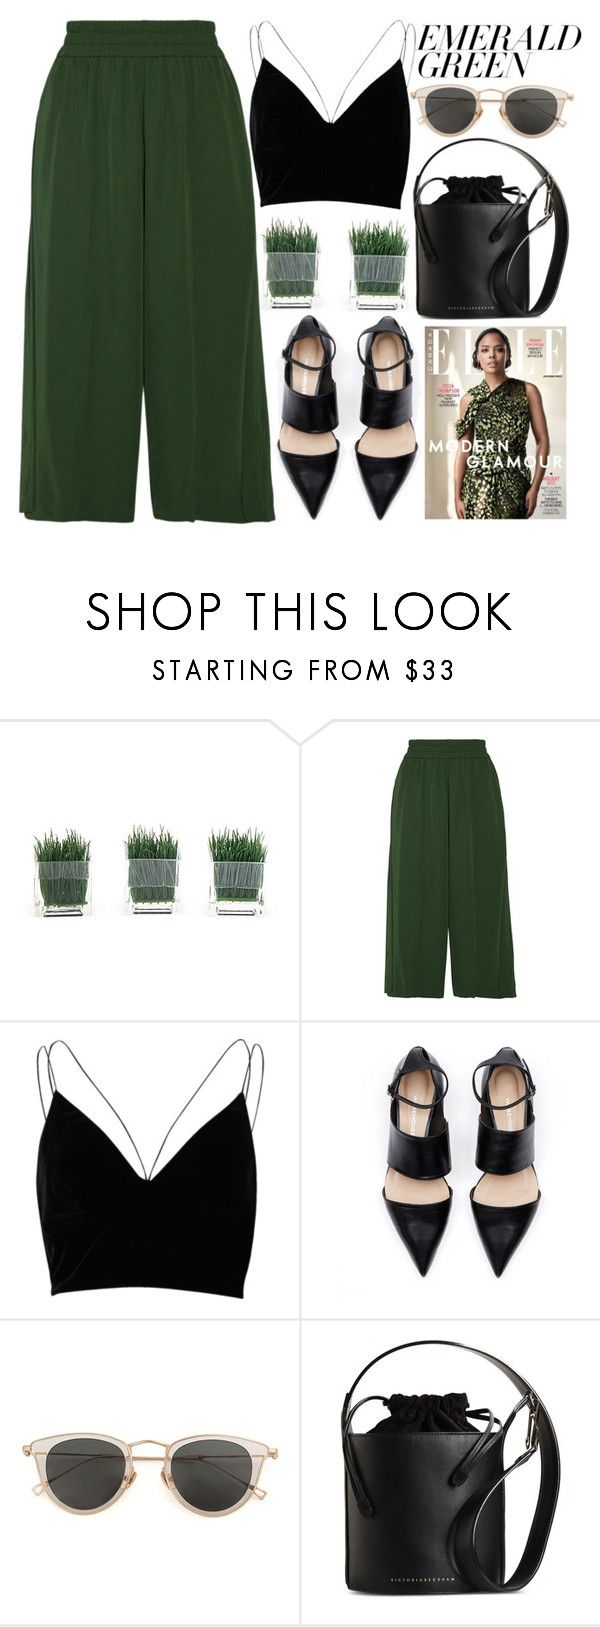 """""""EMERALD"""" by evangeline-lily on Polyvore featuring Acne Studios, River Island, Issey Miyake, Victoria Beckham and emeraldgreen"""